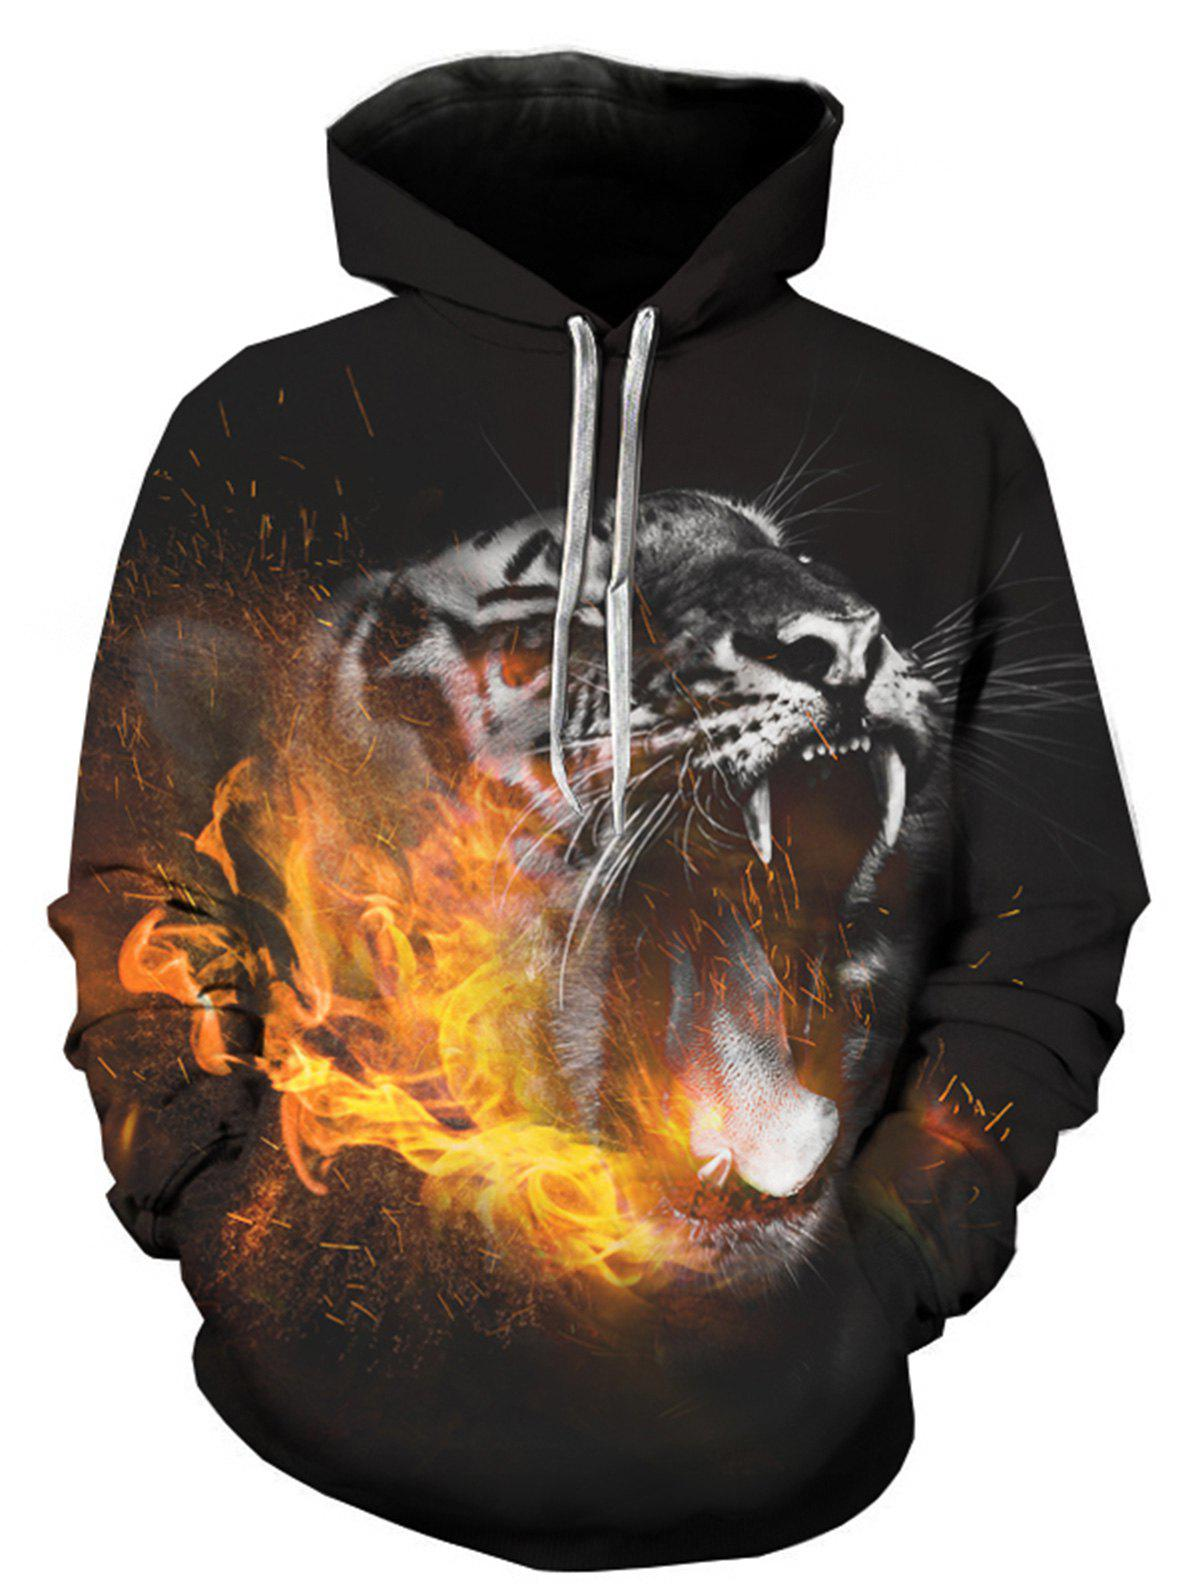 Leopard Flame 3D Print Pullover Hoodie leopard flame 3d print pullover hoodie